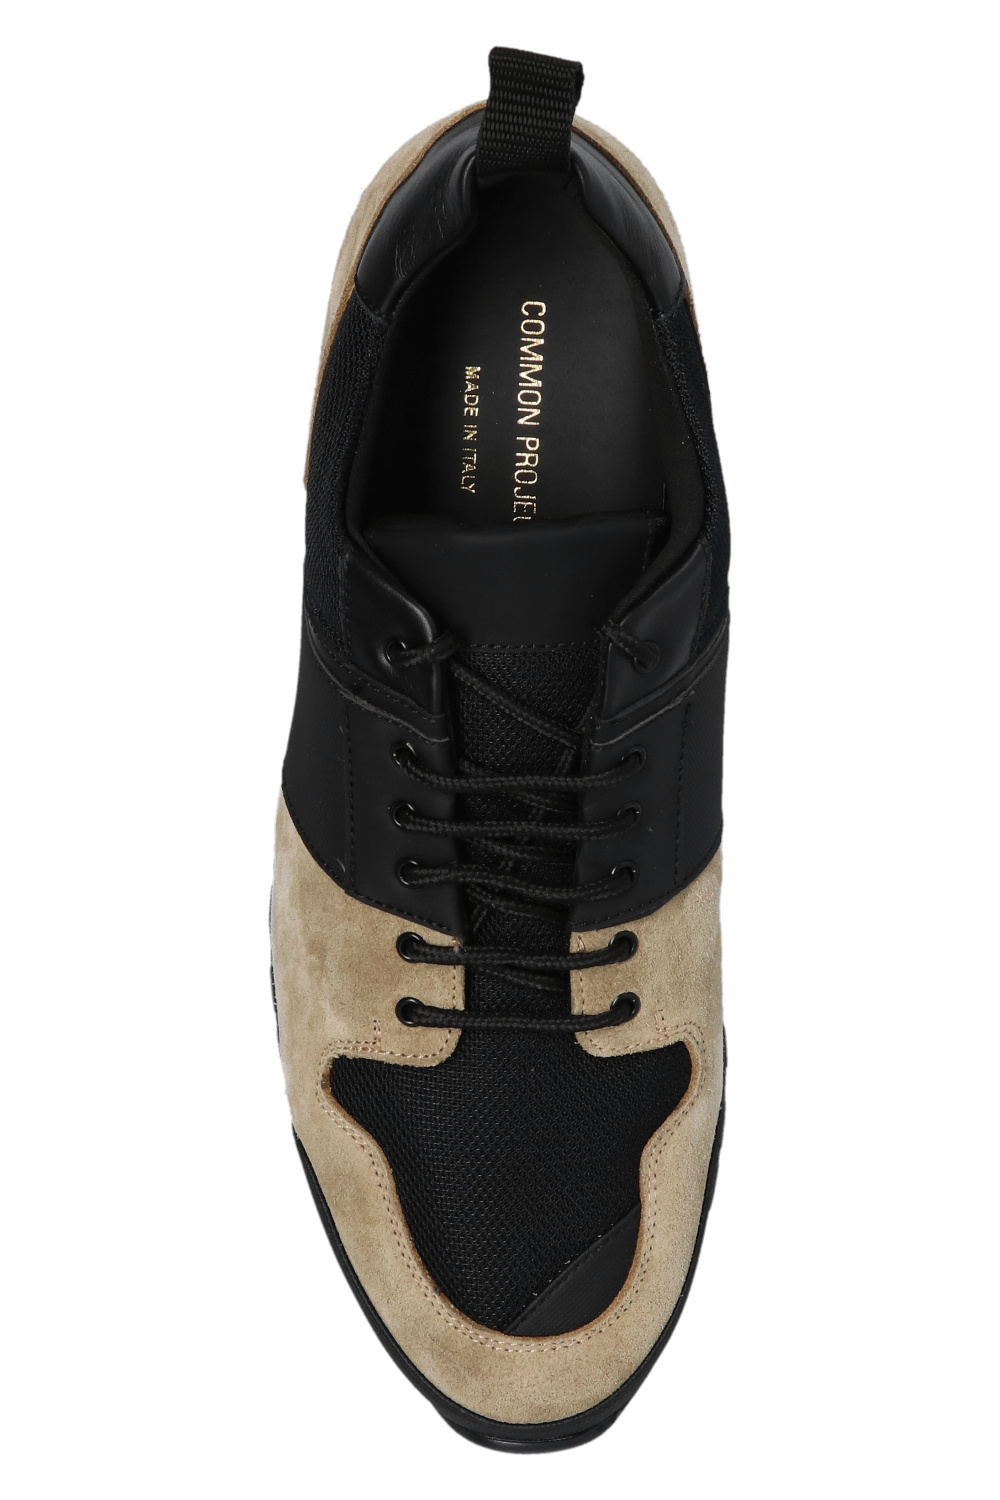 Common Projects 'Track Technical' sneakers